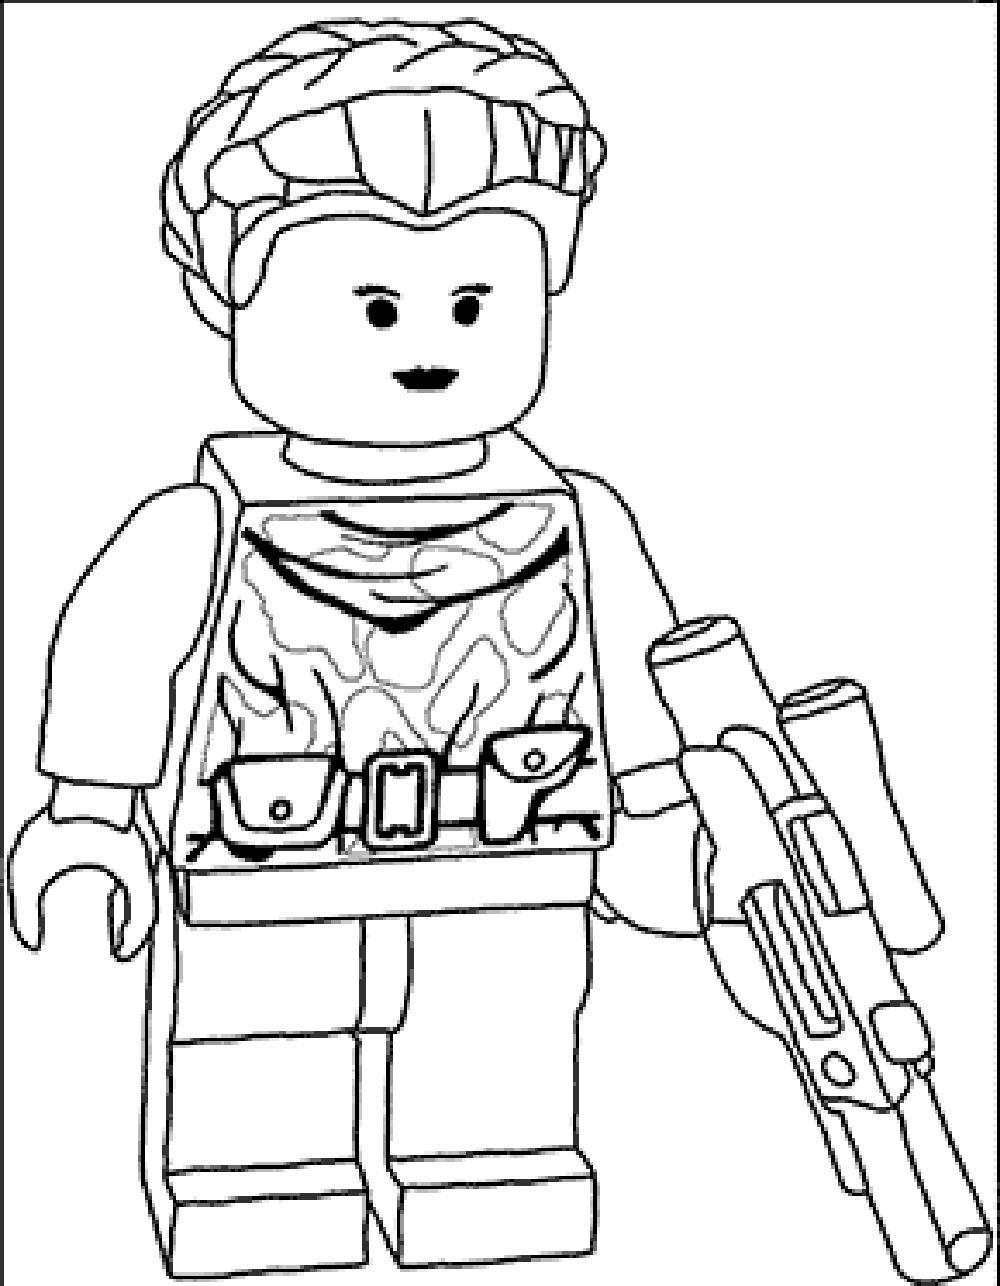 lego star wars coloring pages to print - lego star wars coloring pages to print